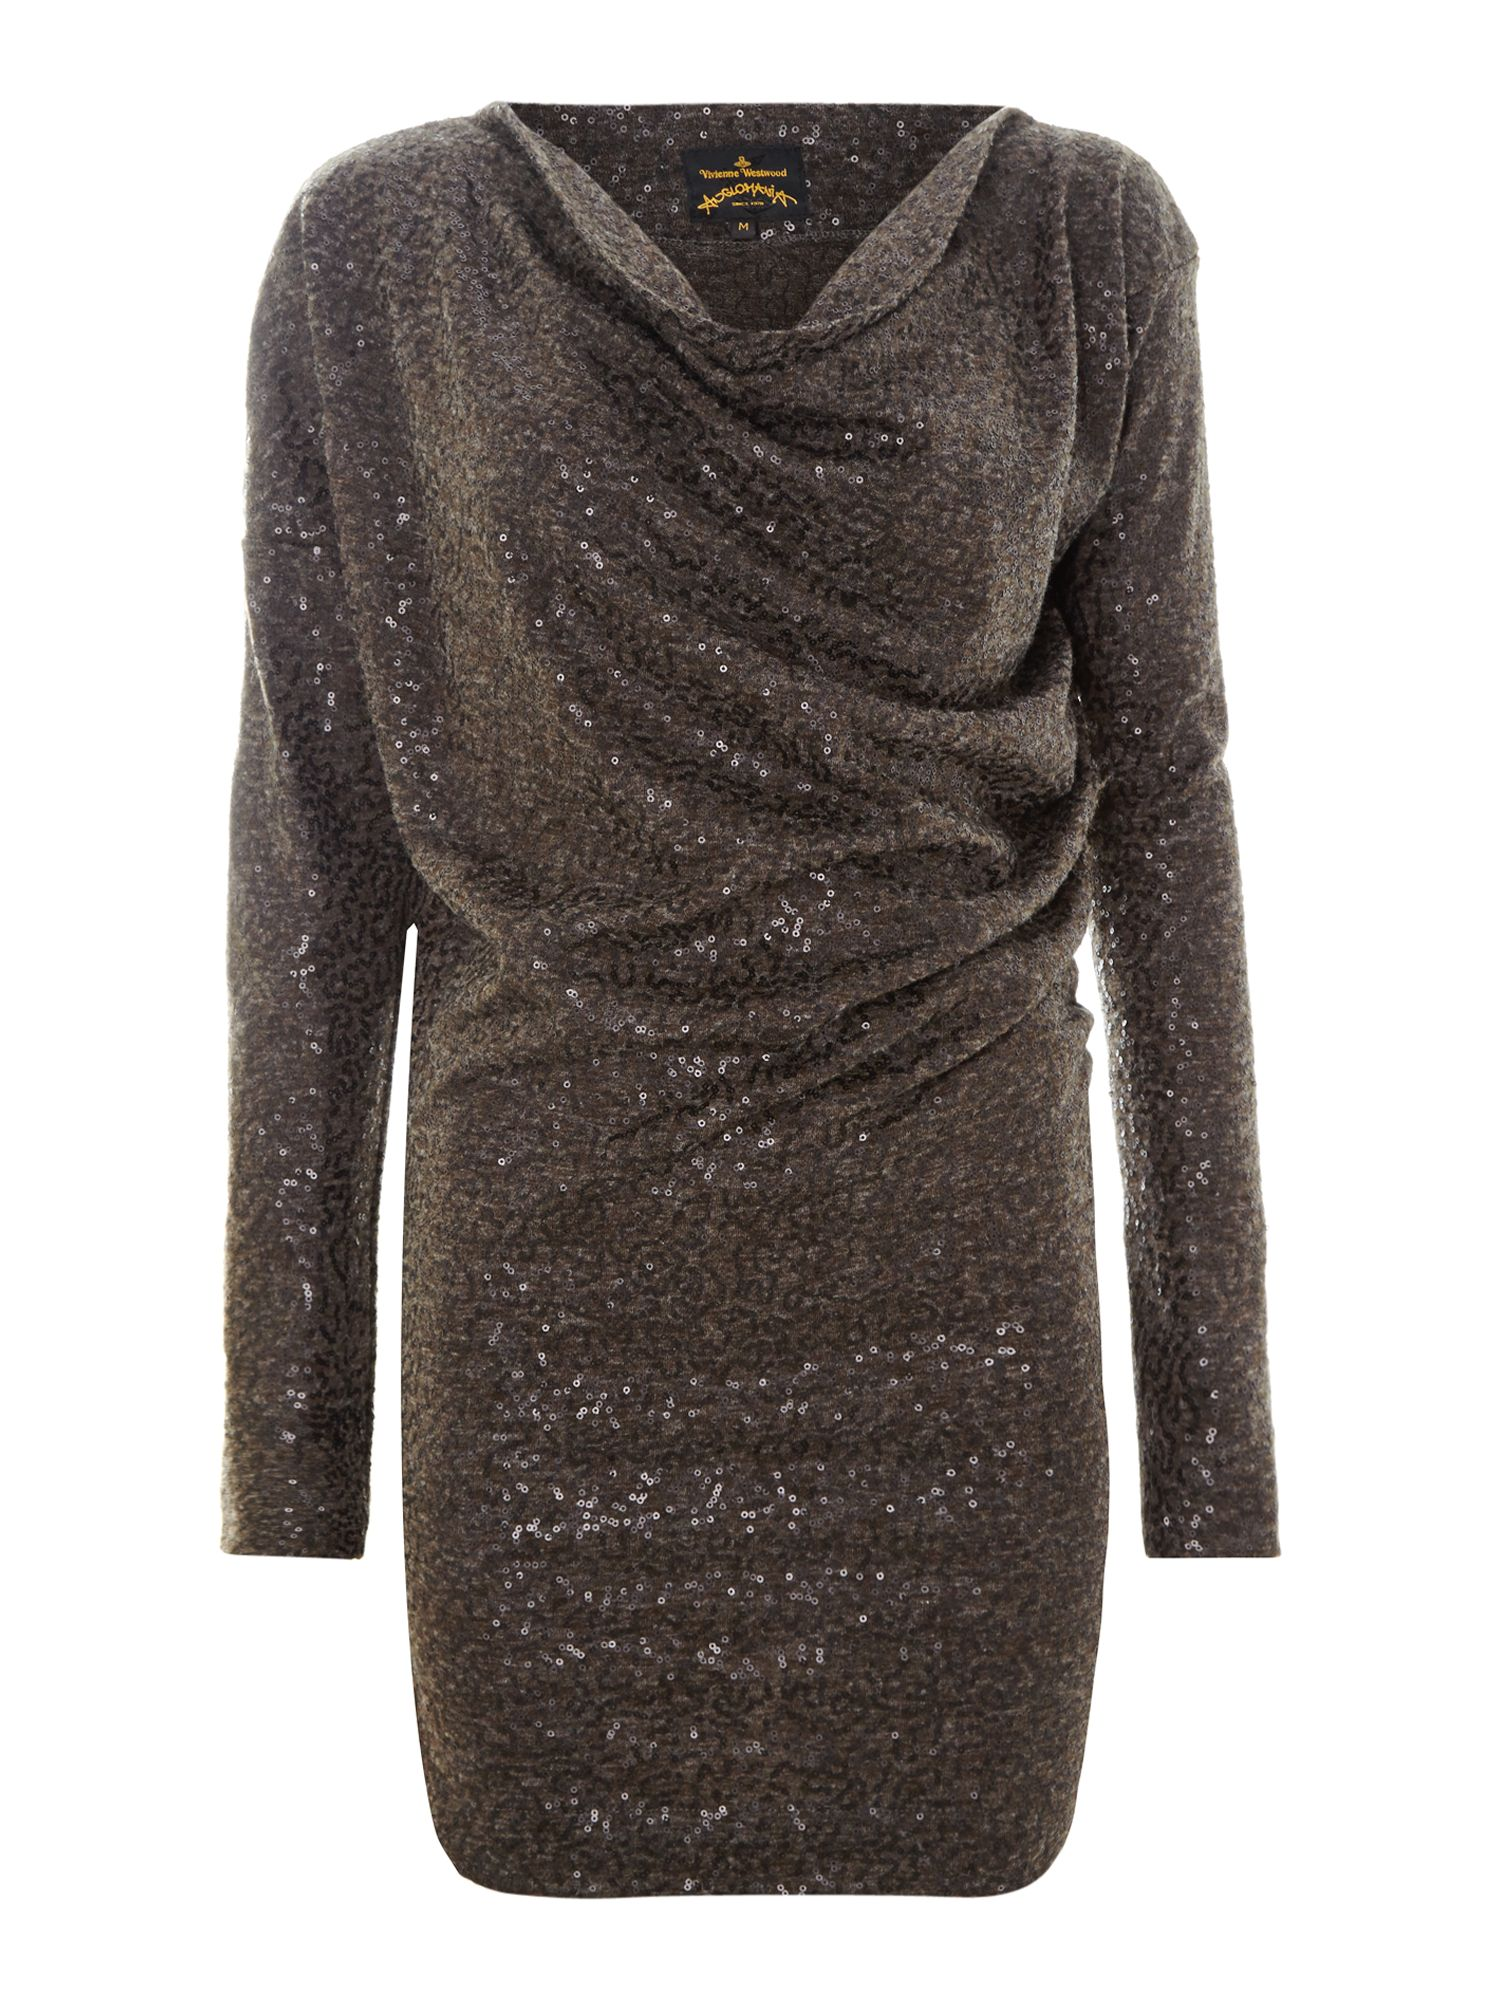 New drape sequin tunic